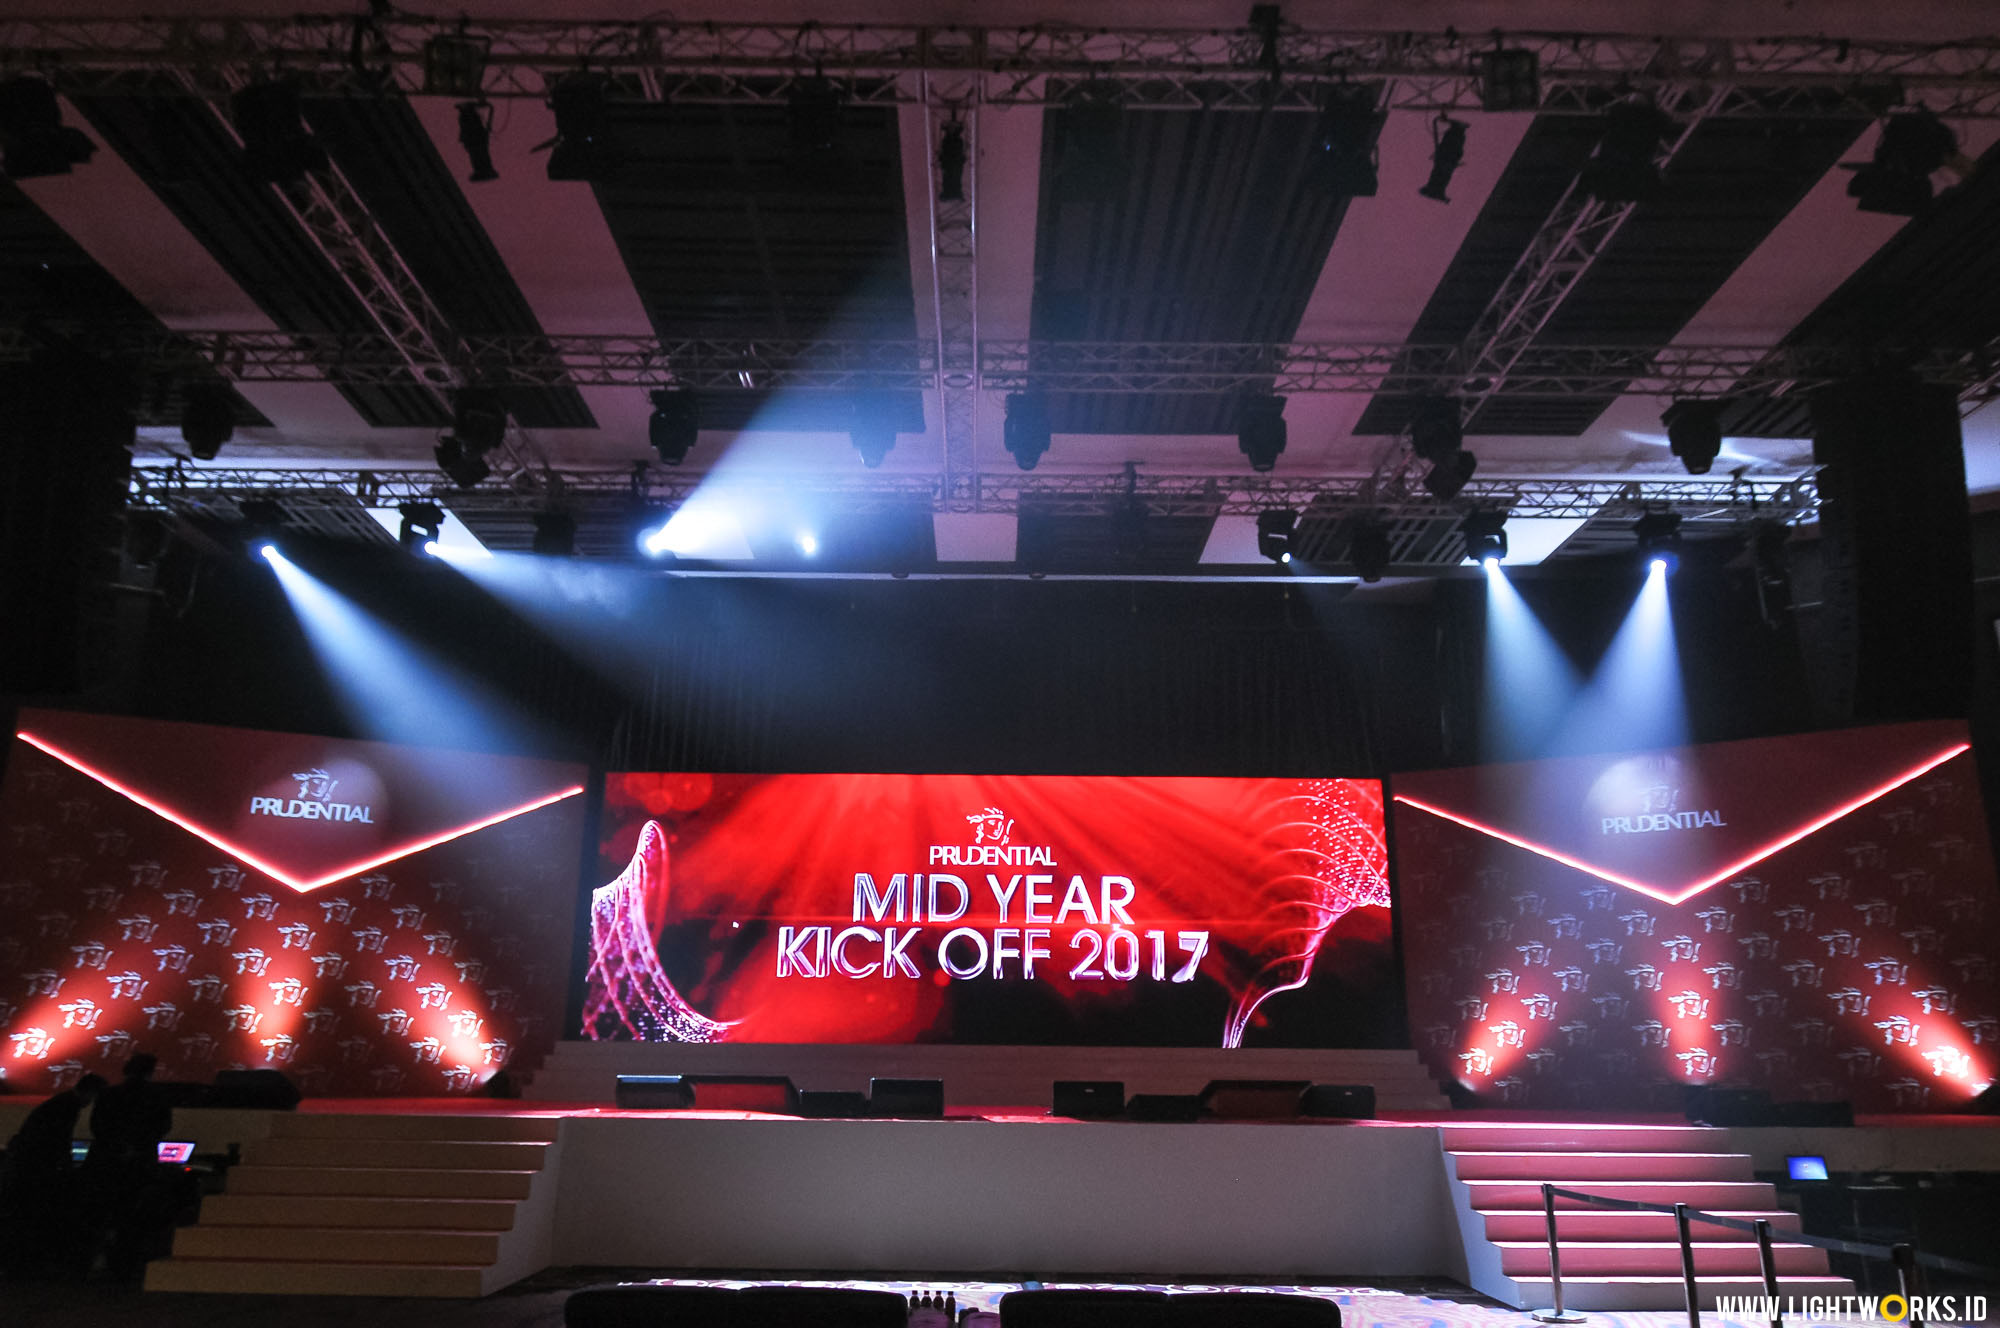 Prudential Mid Year Kick Off 2017 | Venue at The Kasablanka | Lighting designer Natan Budiman | Lighting by Lightworks